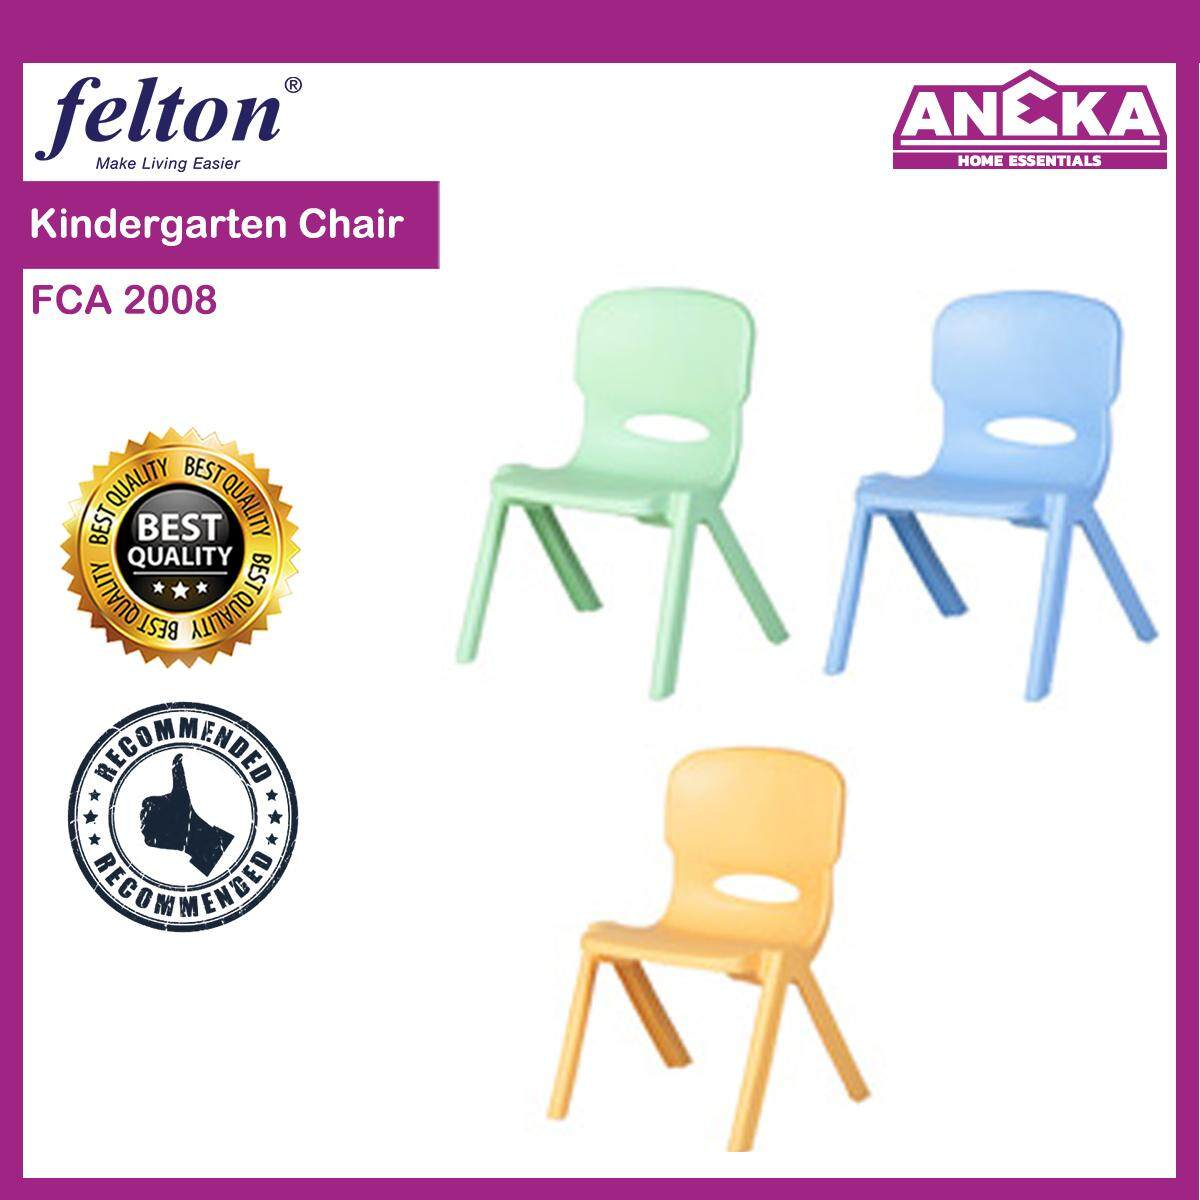 Felton Blue Kids Chair / Kids Stool / Plastic Kid Chair / Kindergarten Chair By Aneka Home Essentials.